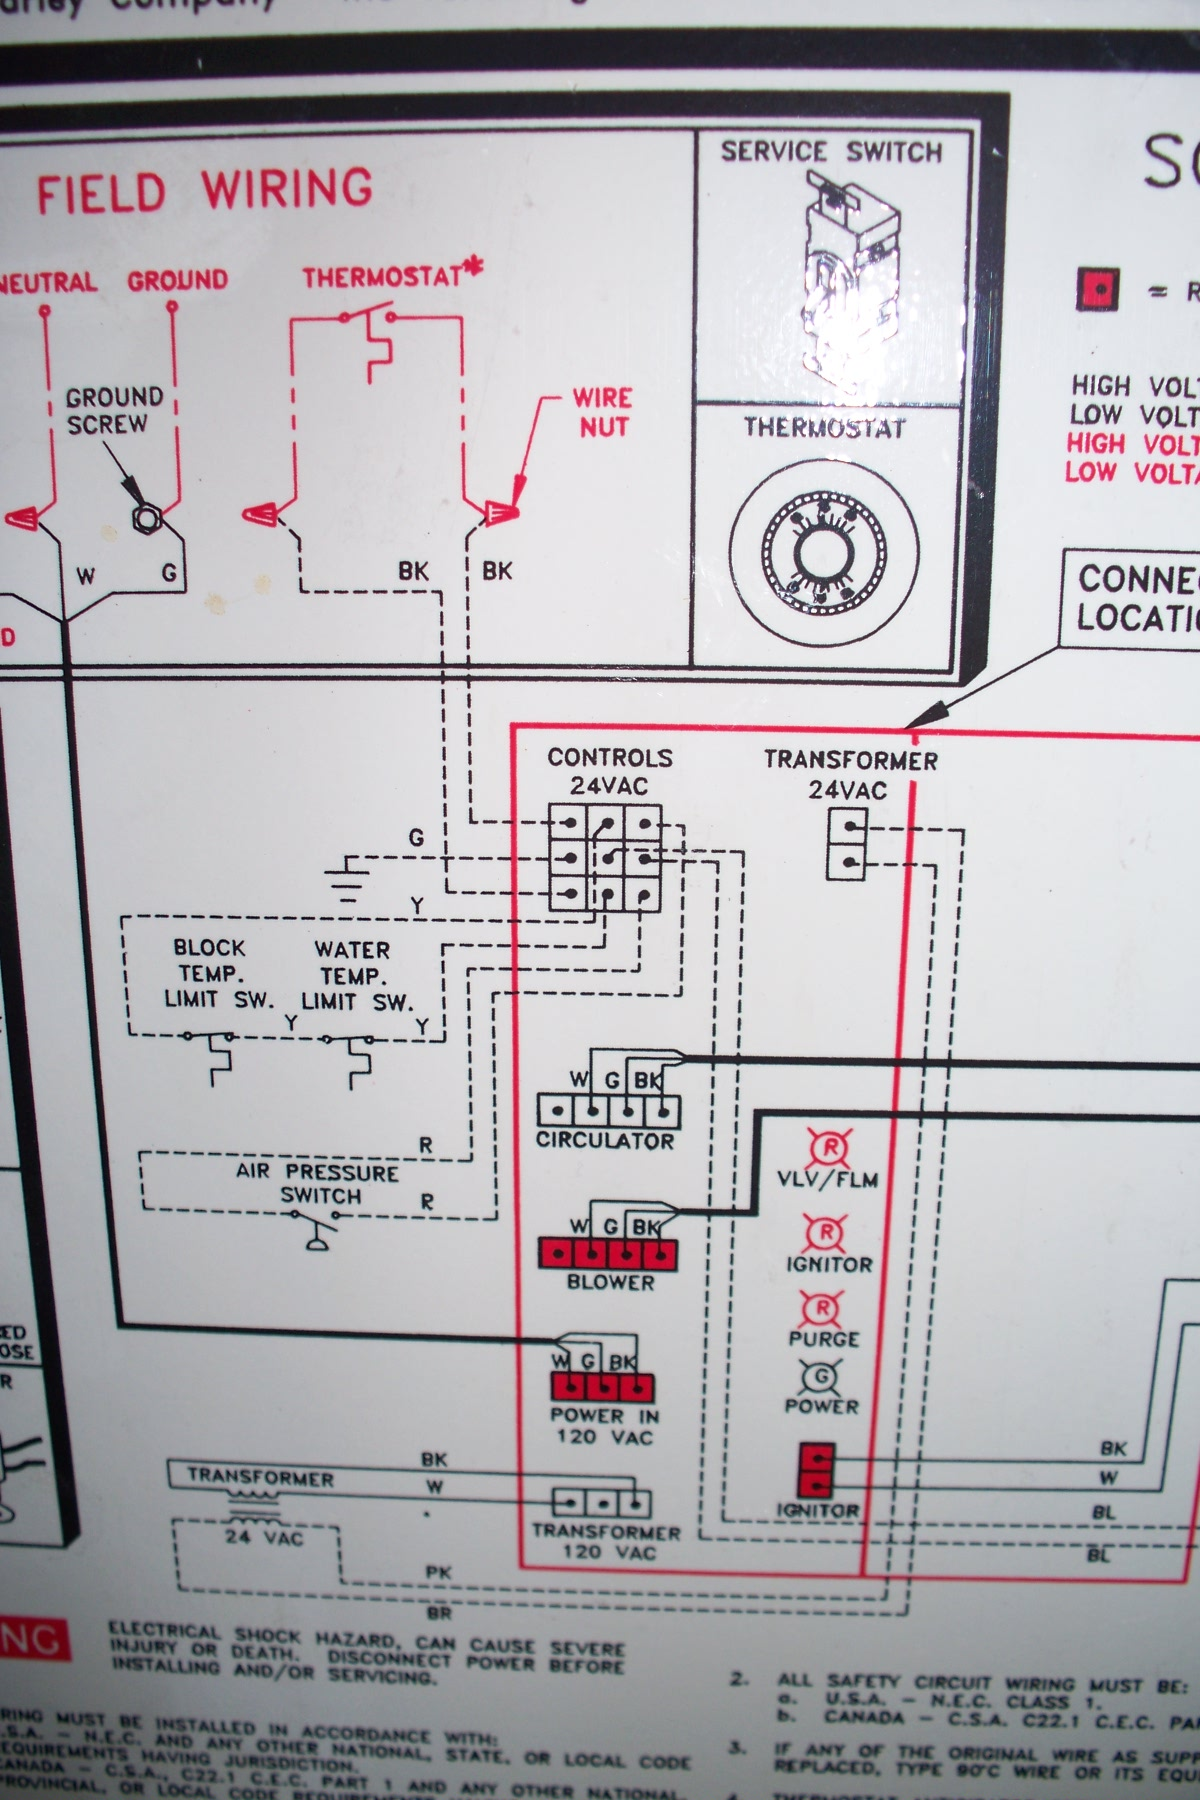 2014 01 12_010619_100_3141 i have a weil mcclain gv5 series 2 boiler with an amtrol amtrol boilermate wiring diagram at gsmx.co